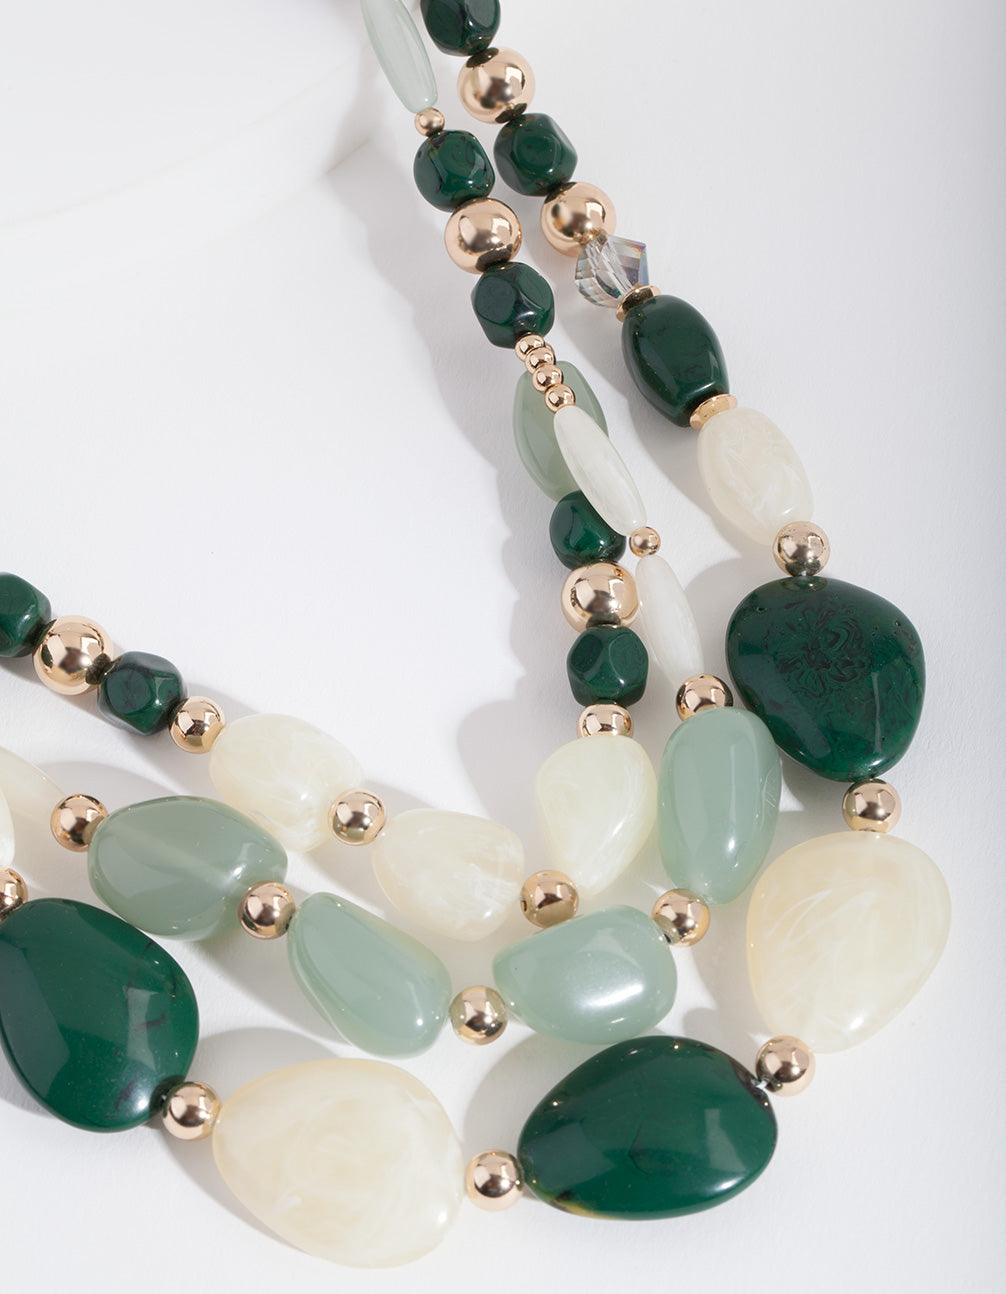 Green Marble Layered Bead Necklace